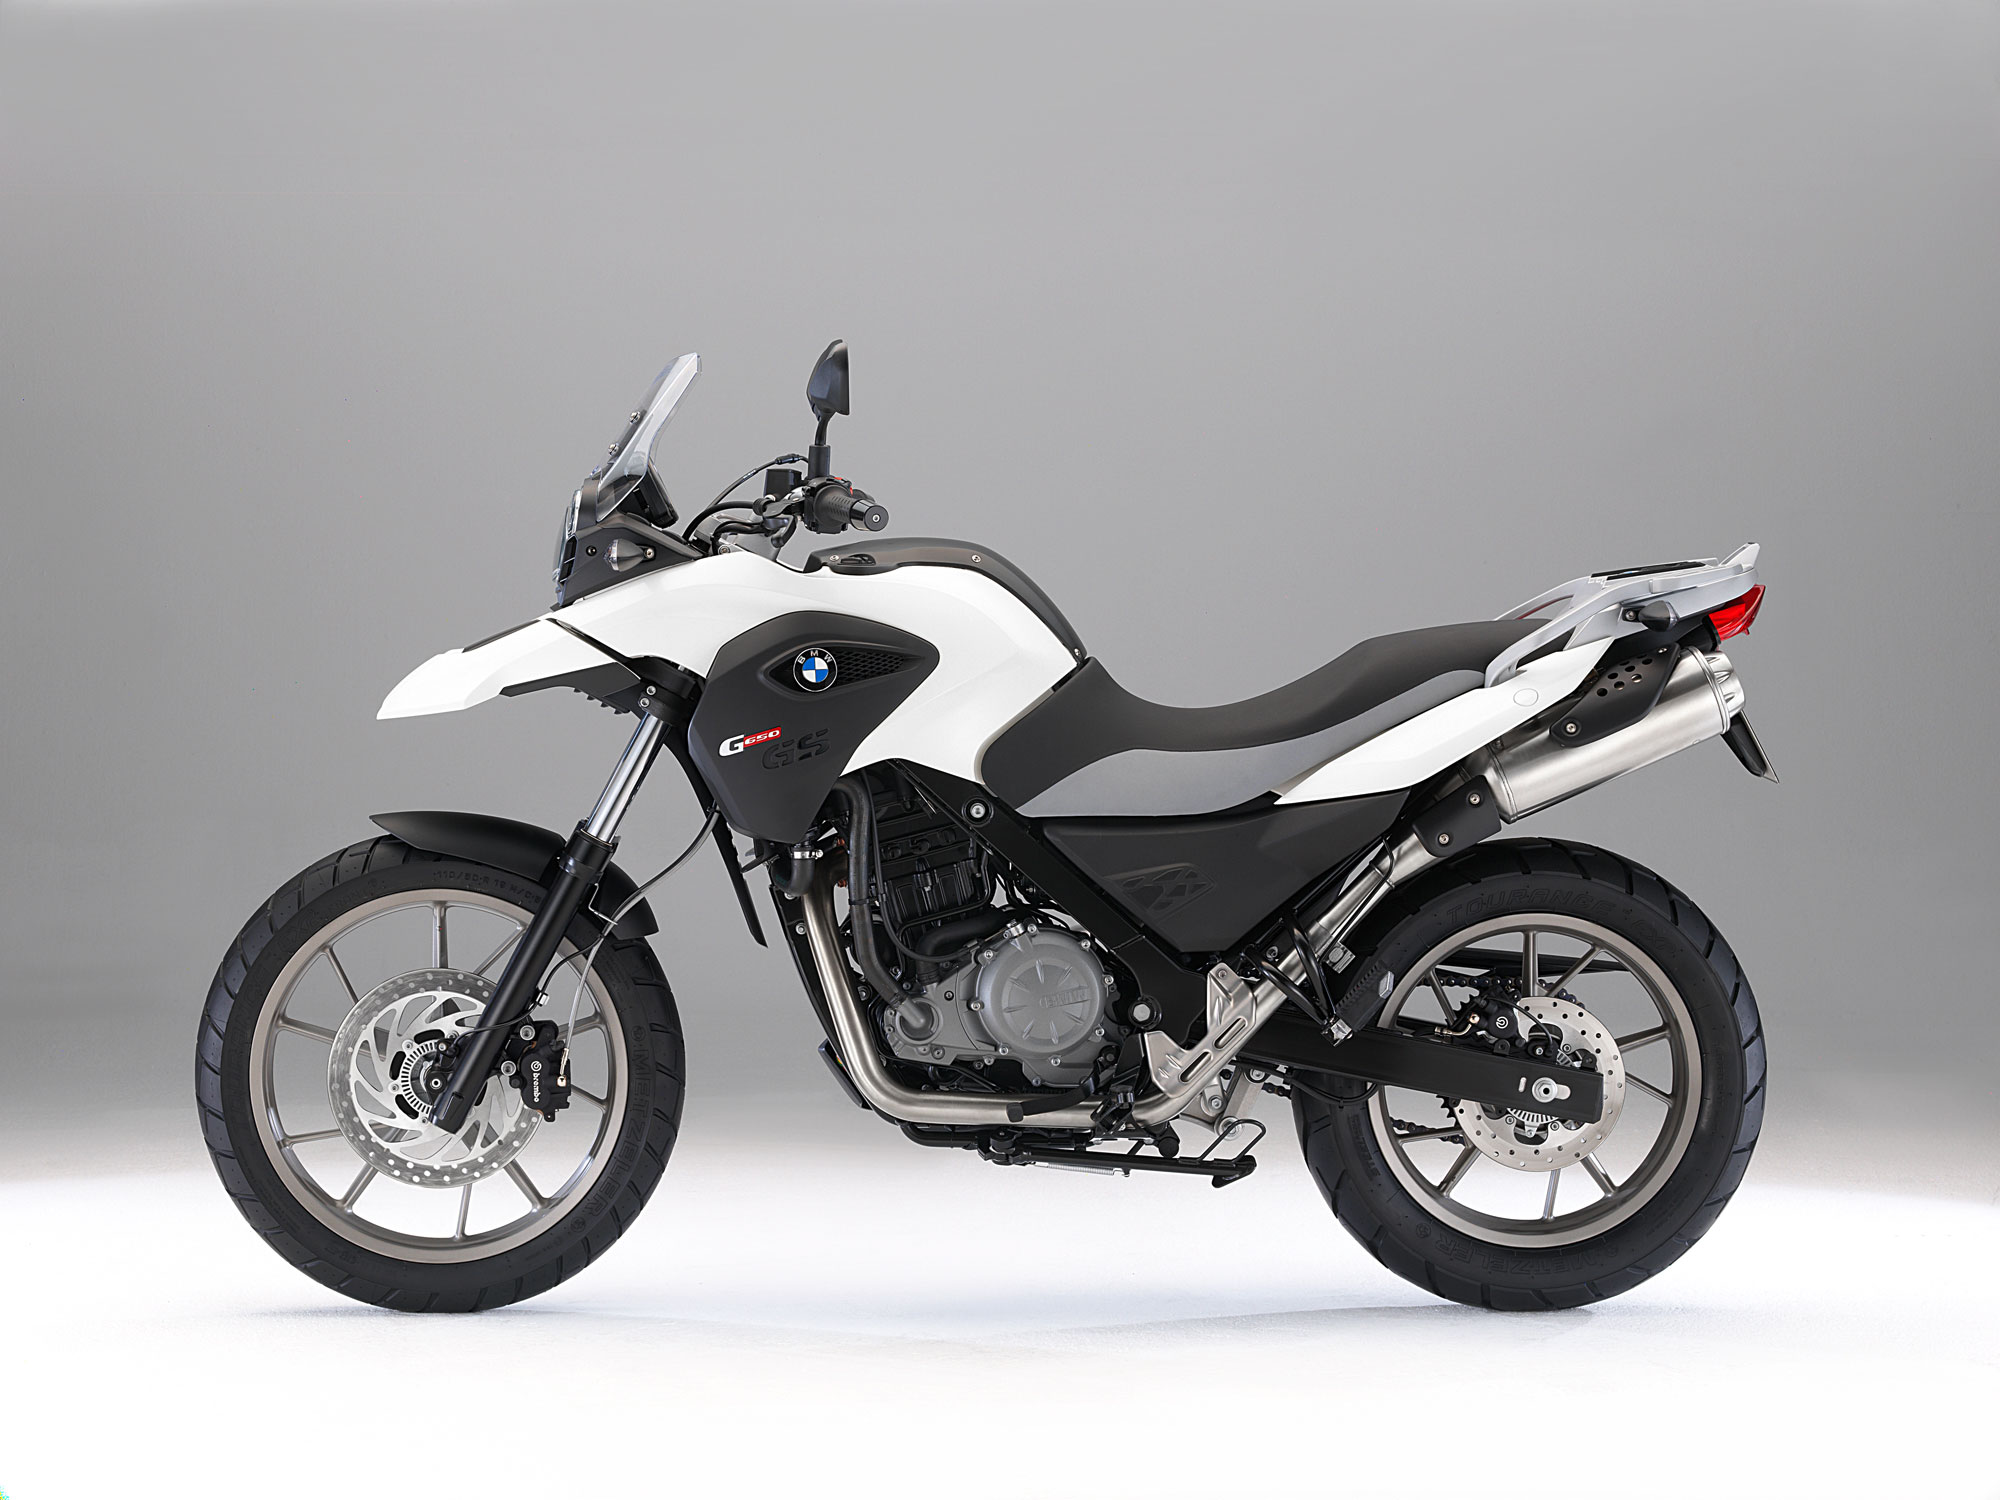 BMW G 650 GS 2011 images #8378